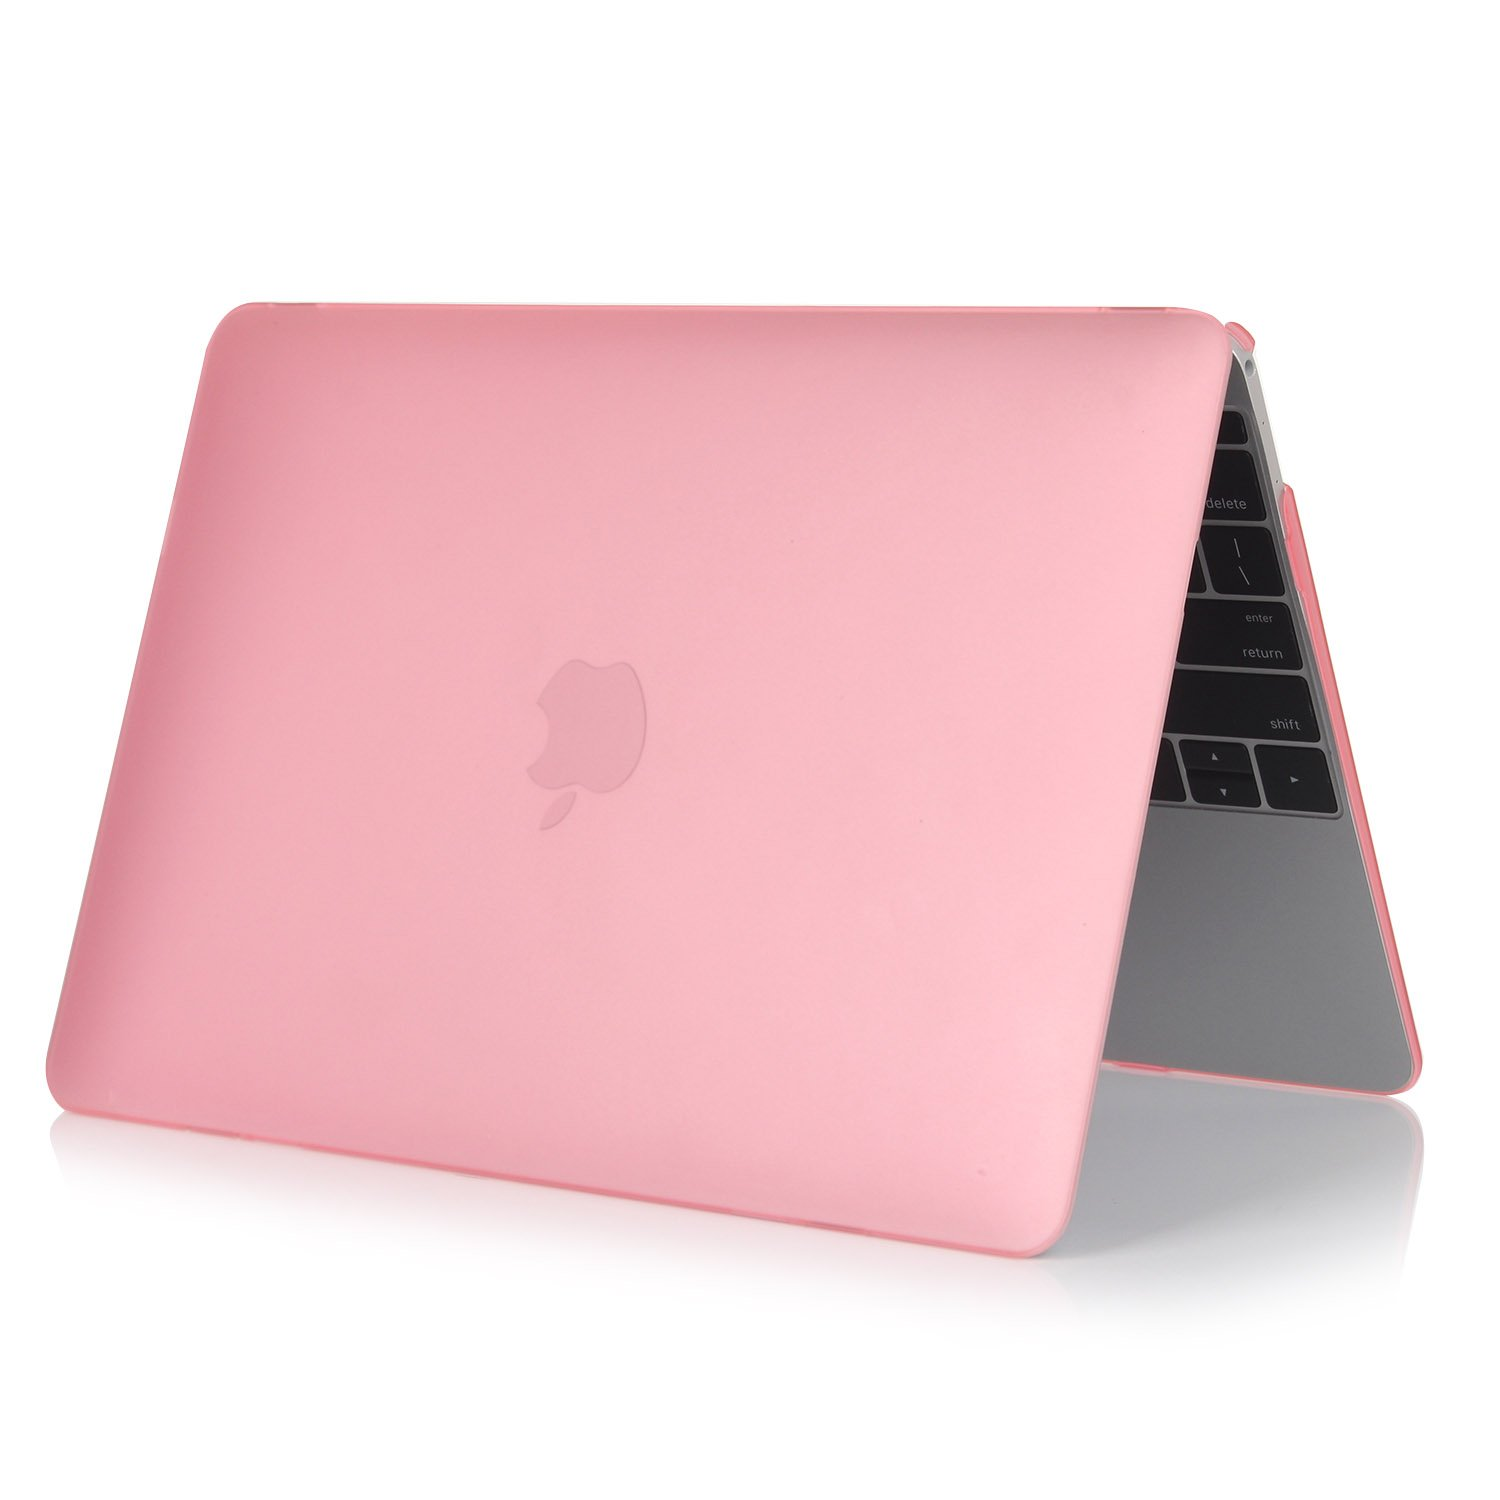 "11.6"" MOSISO PINK Matte Case for MacBook Air Laptop SERENITY BLUE FAST FREE SHIPPING USA"